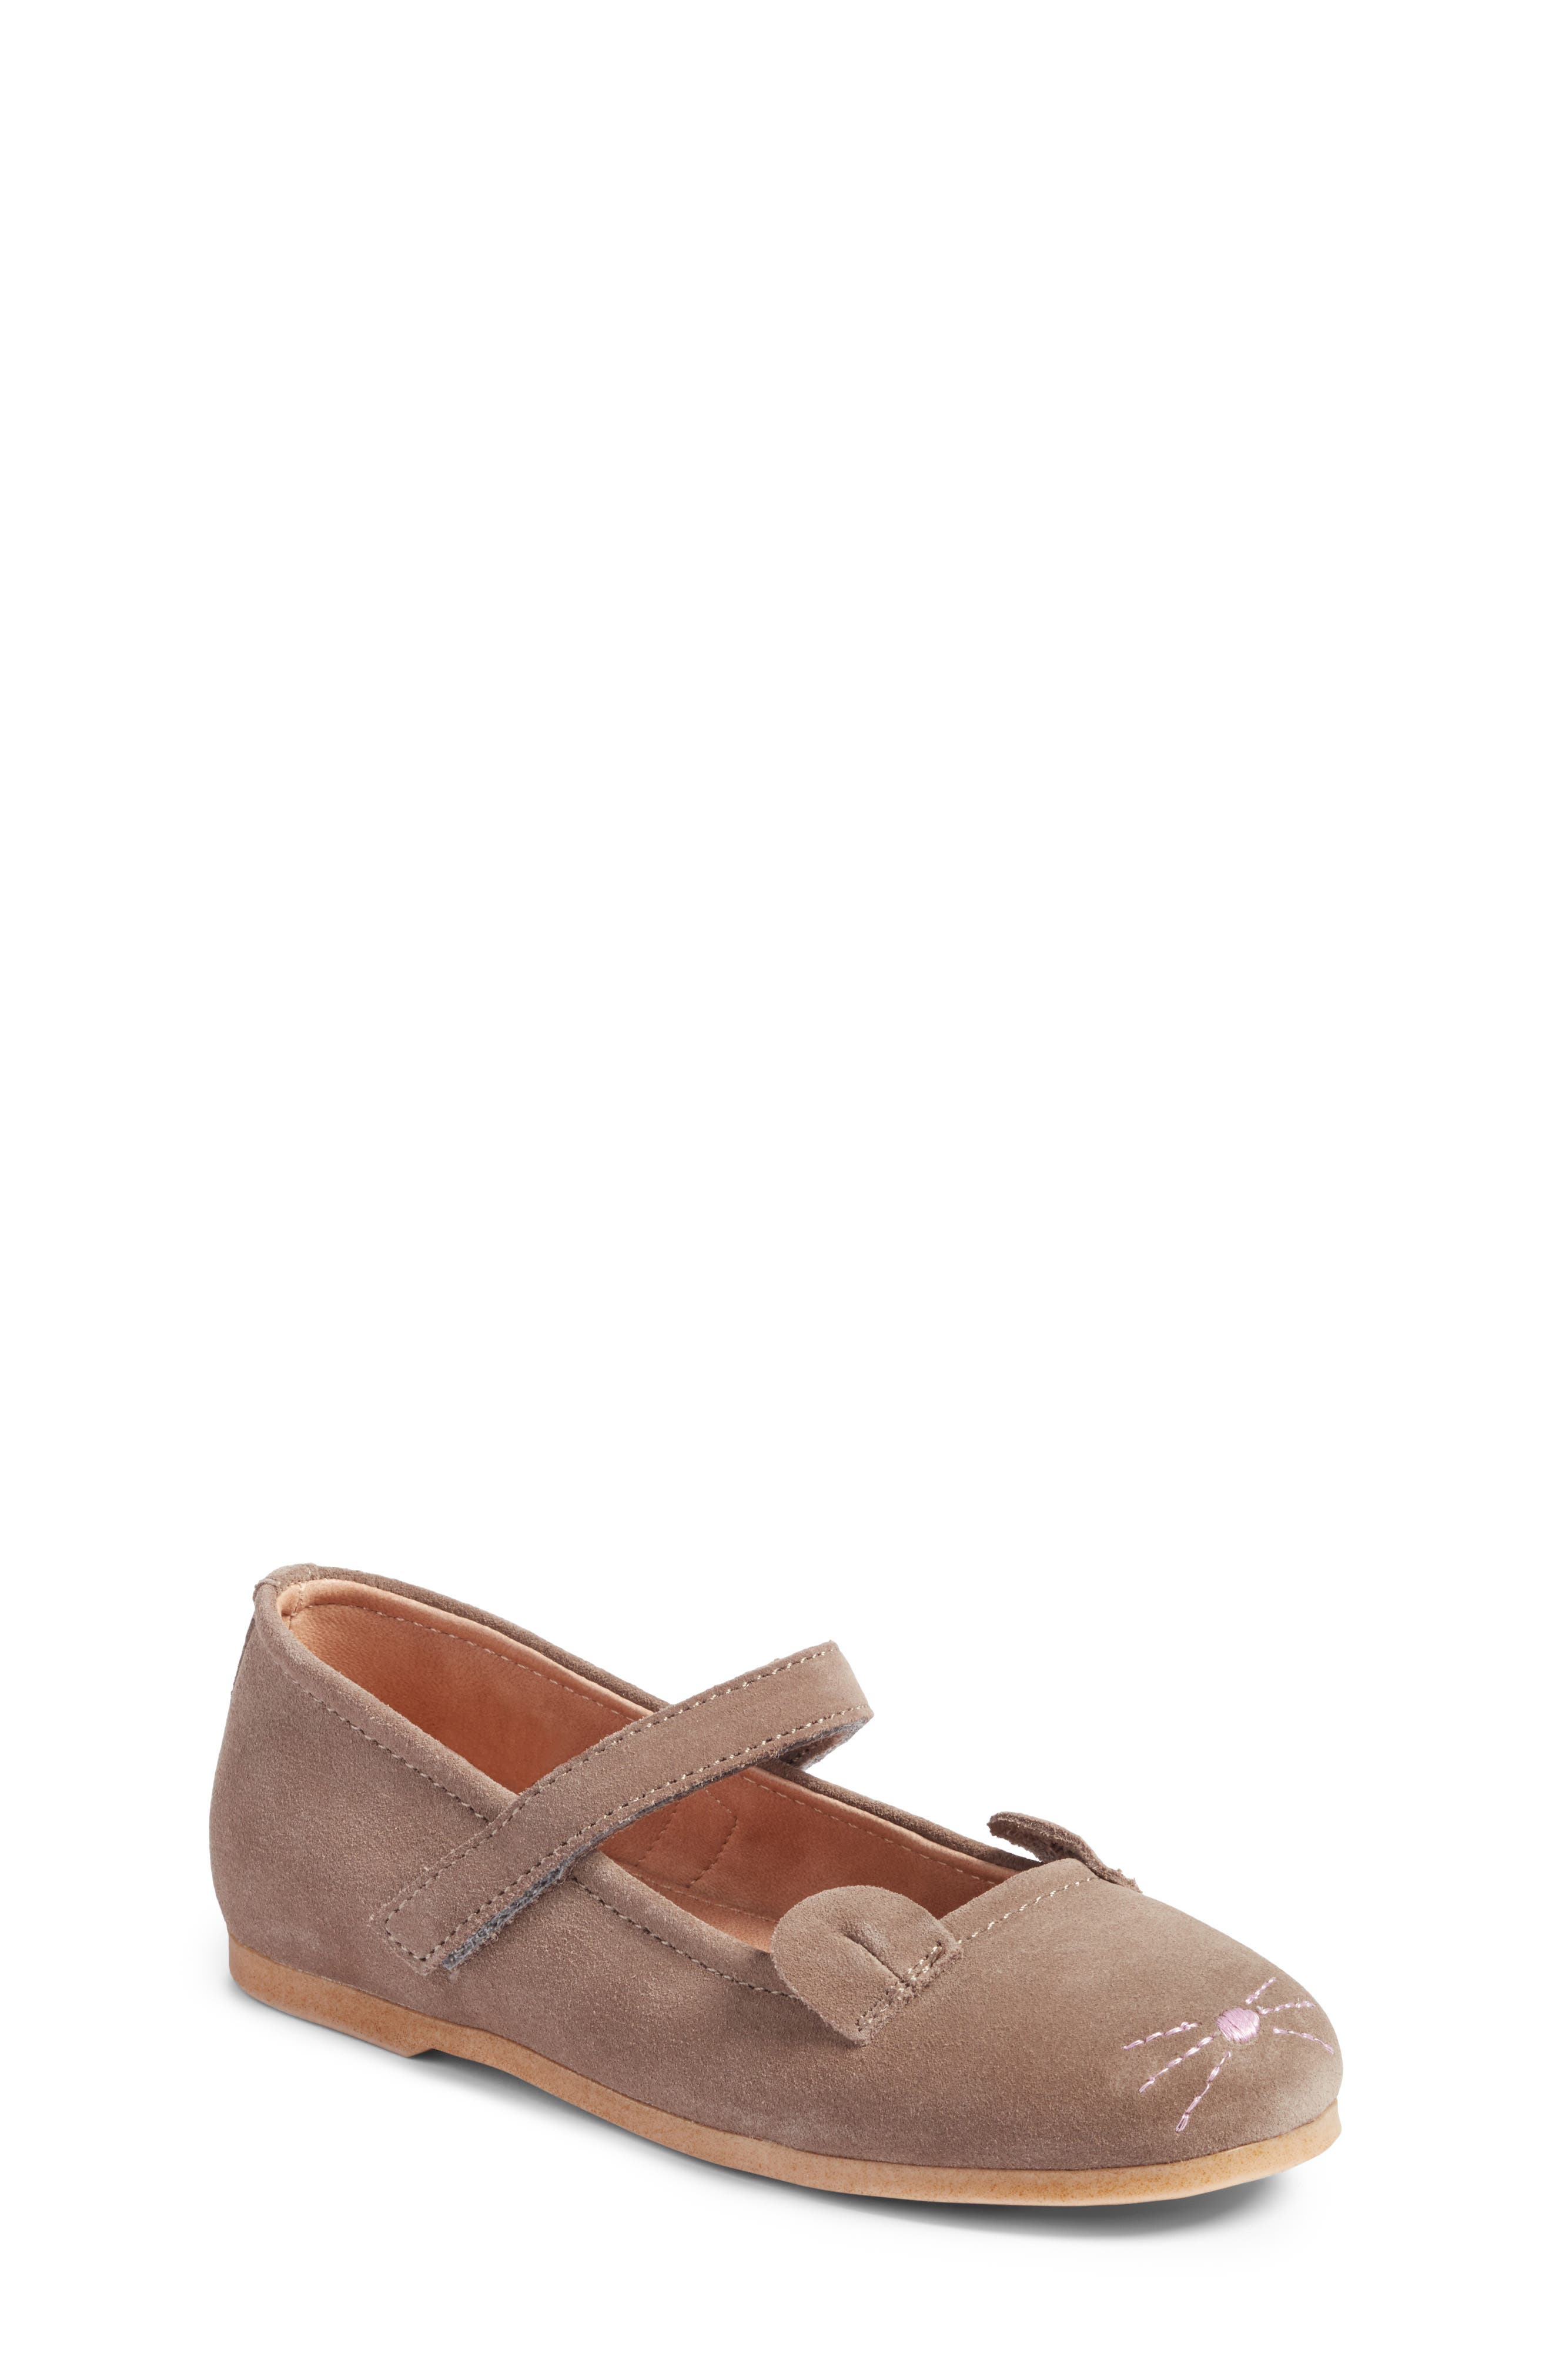 Mouse Mary Jane Flat,                         Main,                         color, 020